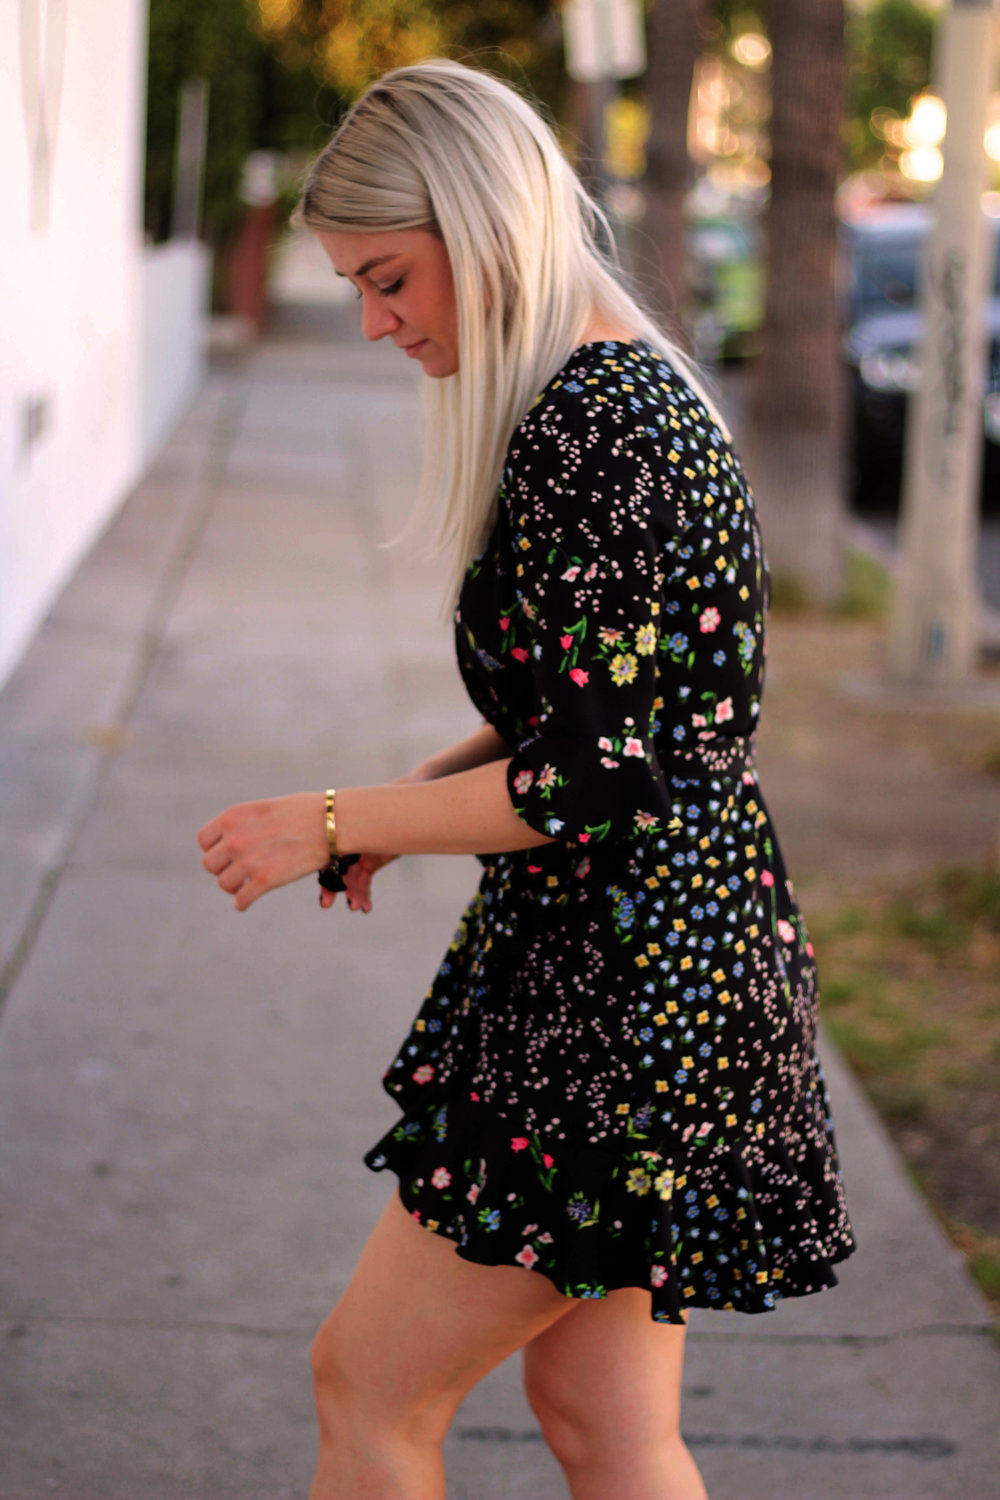 topshop wrap dress, dark floral print, silver bag, los angeles, northern magpie, joey taylor 3